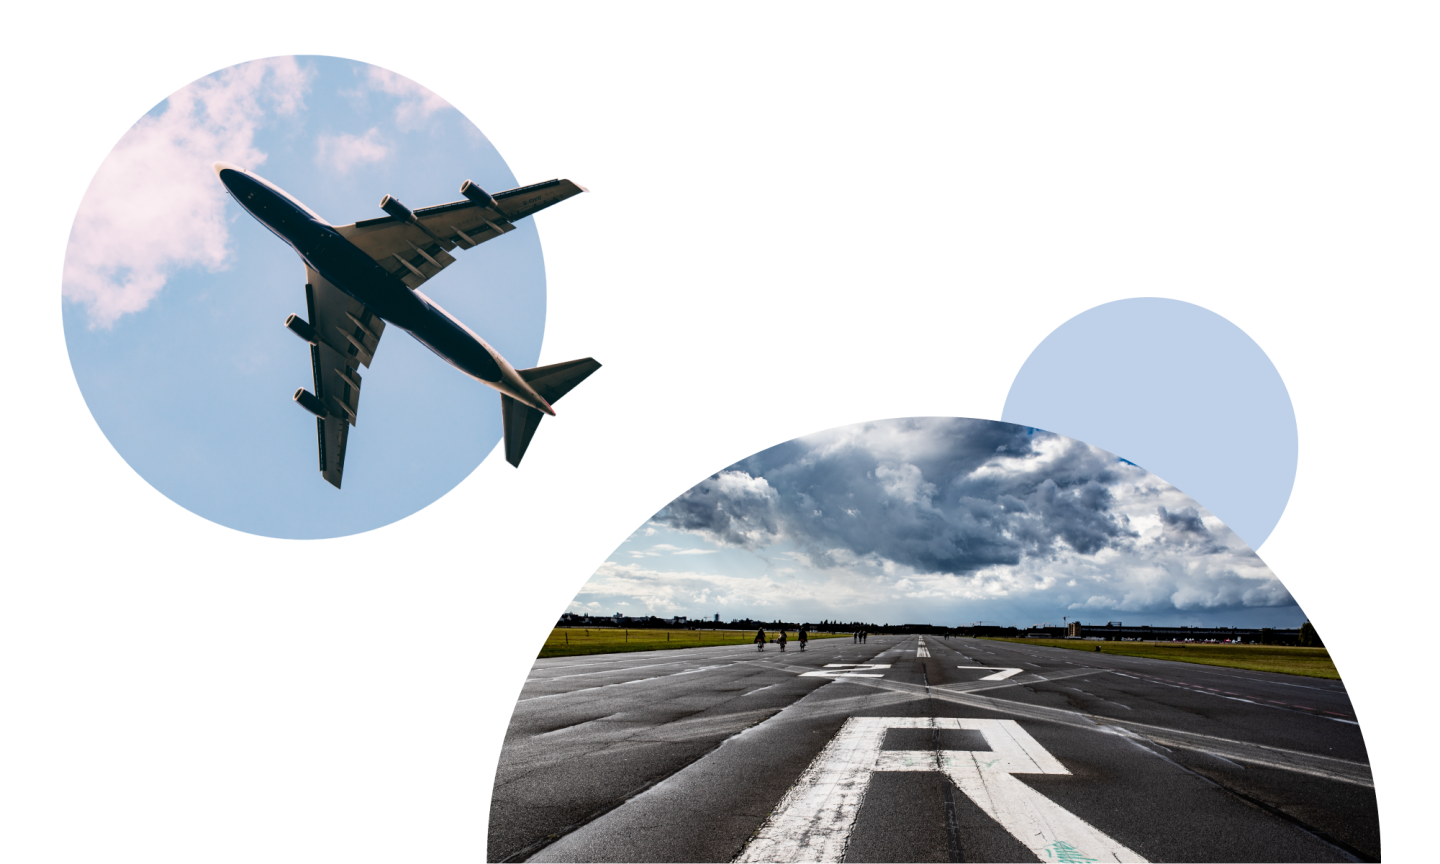 Two images laid together with a circular design: An image of a plane in the air and an image of an empty airfield runway with a capital R painted on the floor